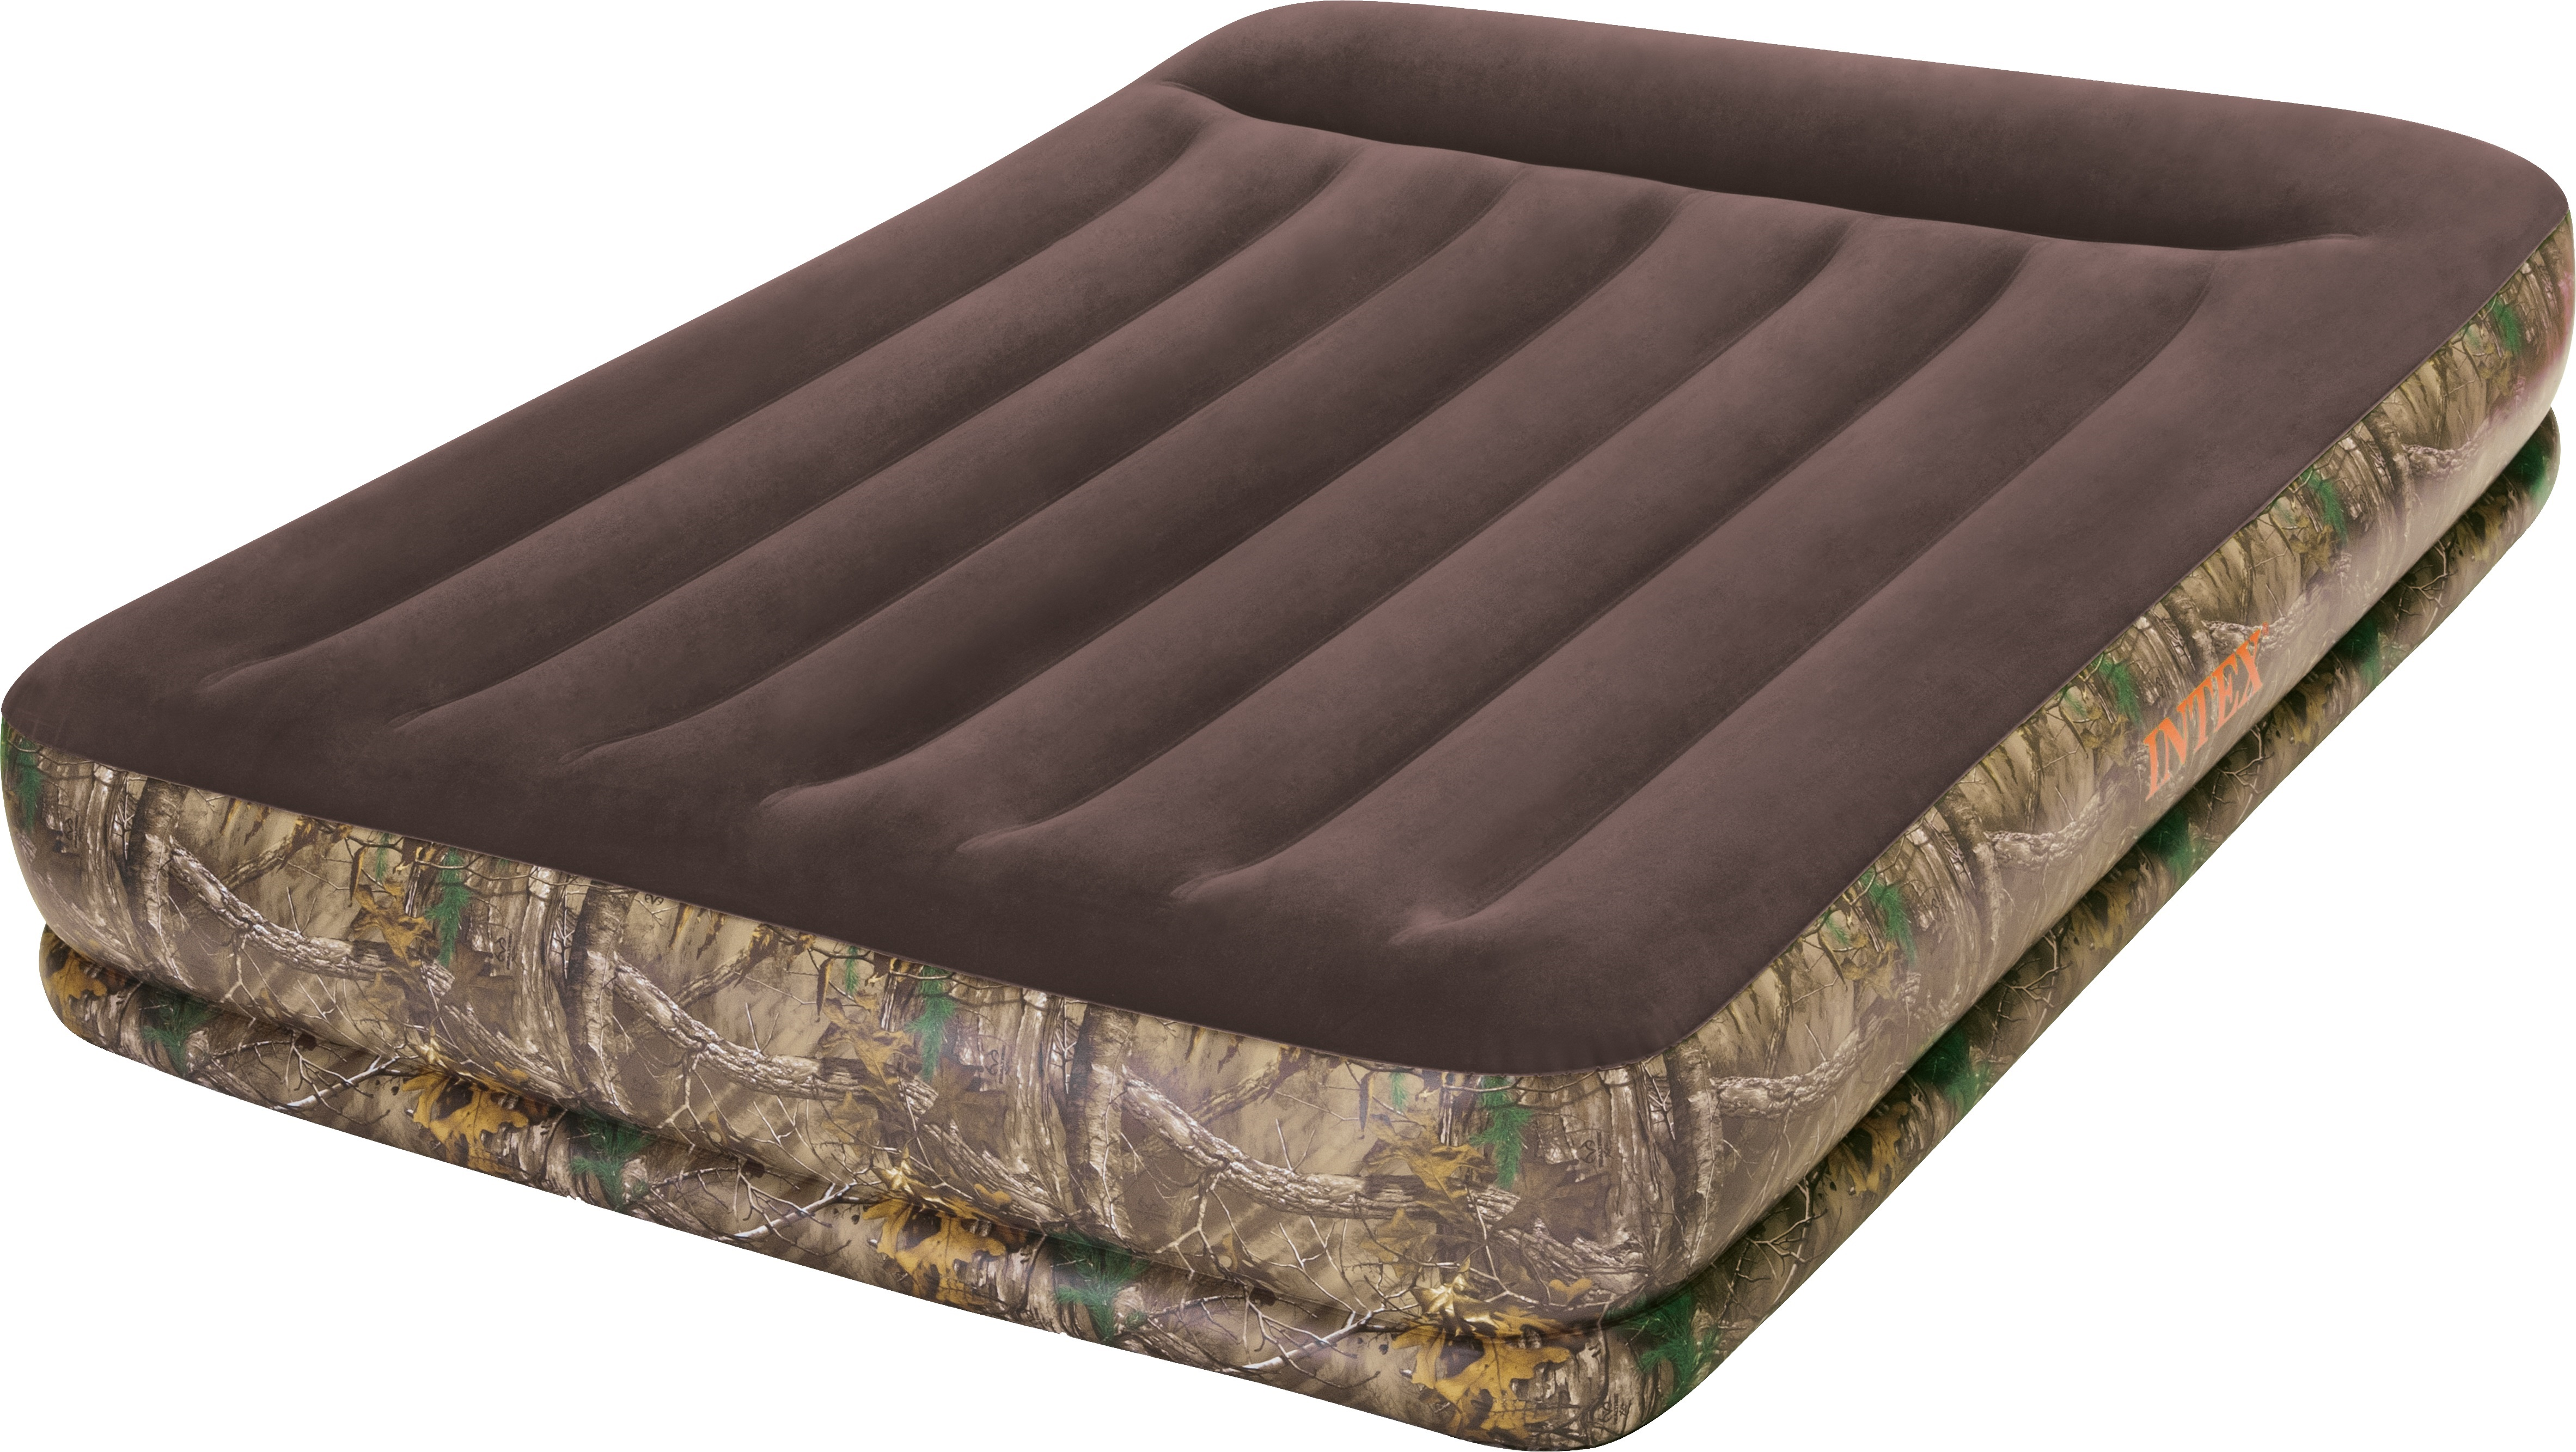 Intex realtree queen size airbed at academy sports for Academy sports fish finders